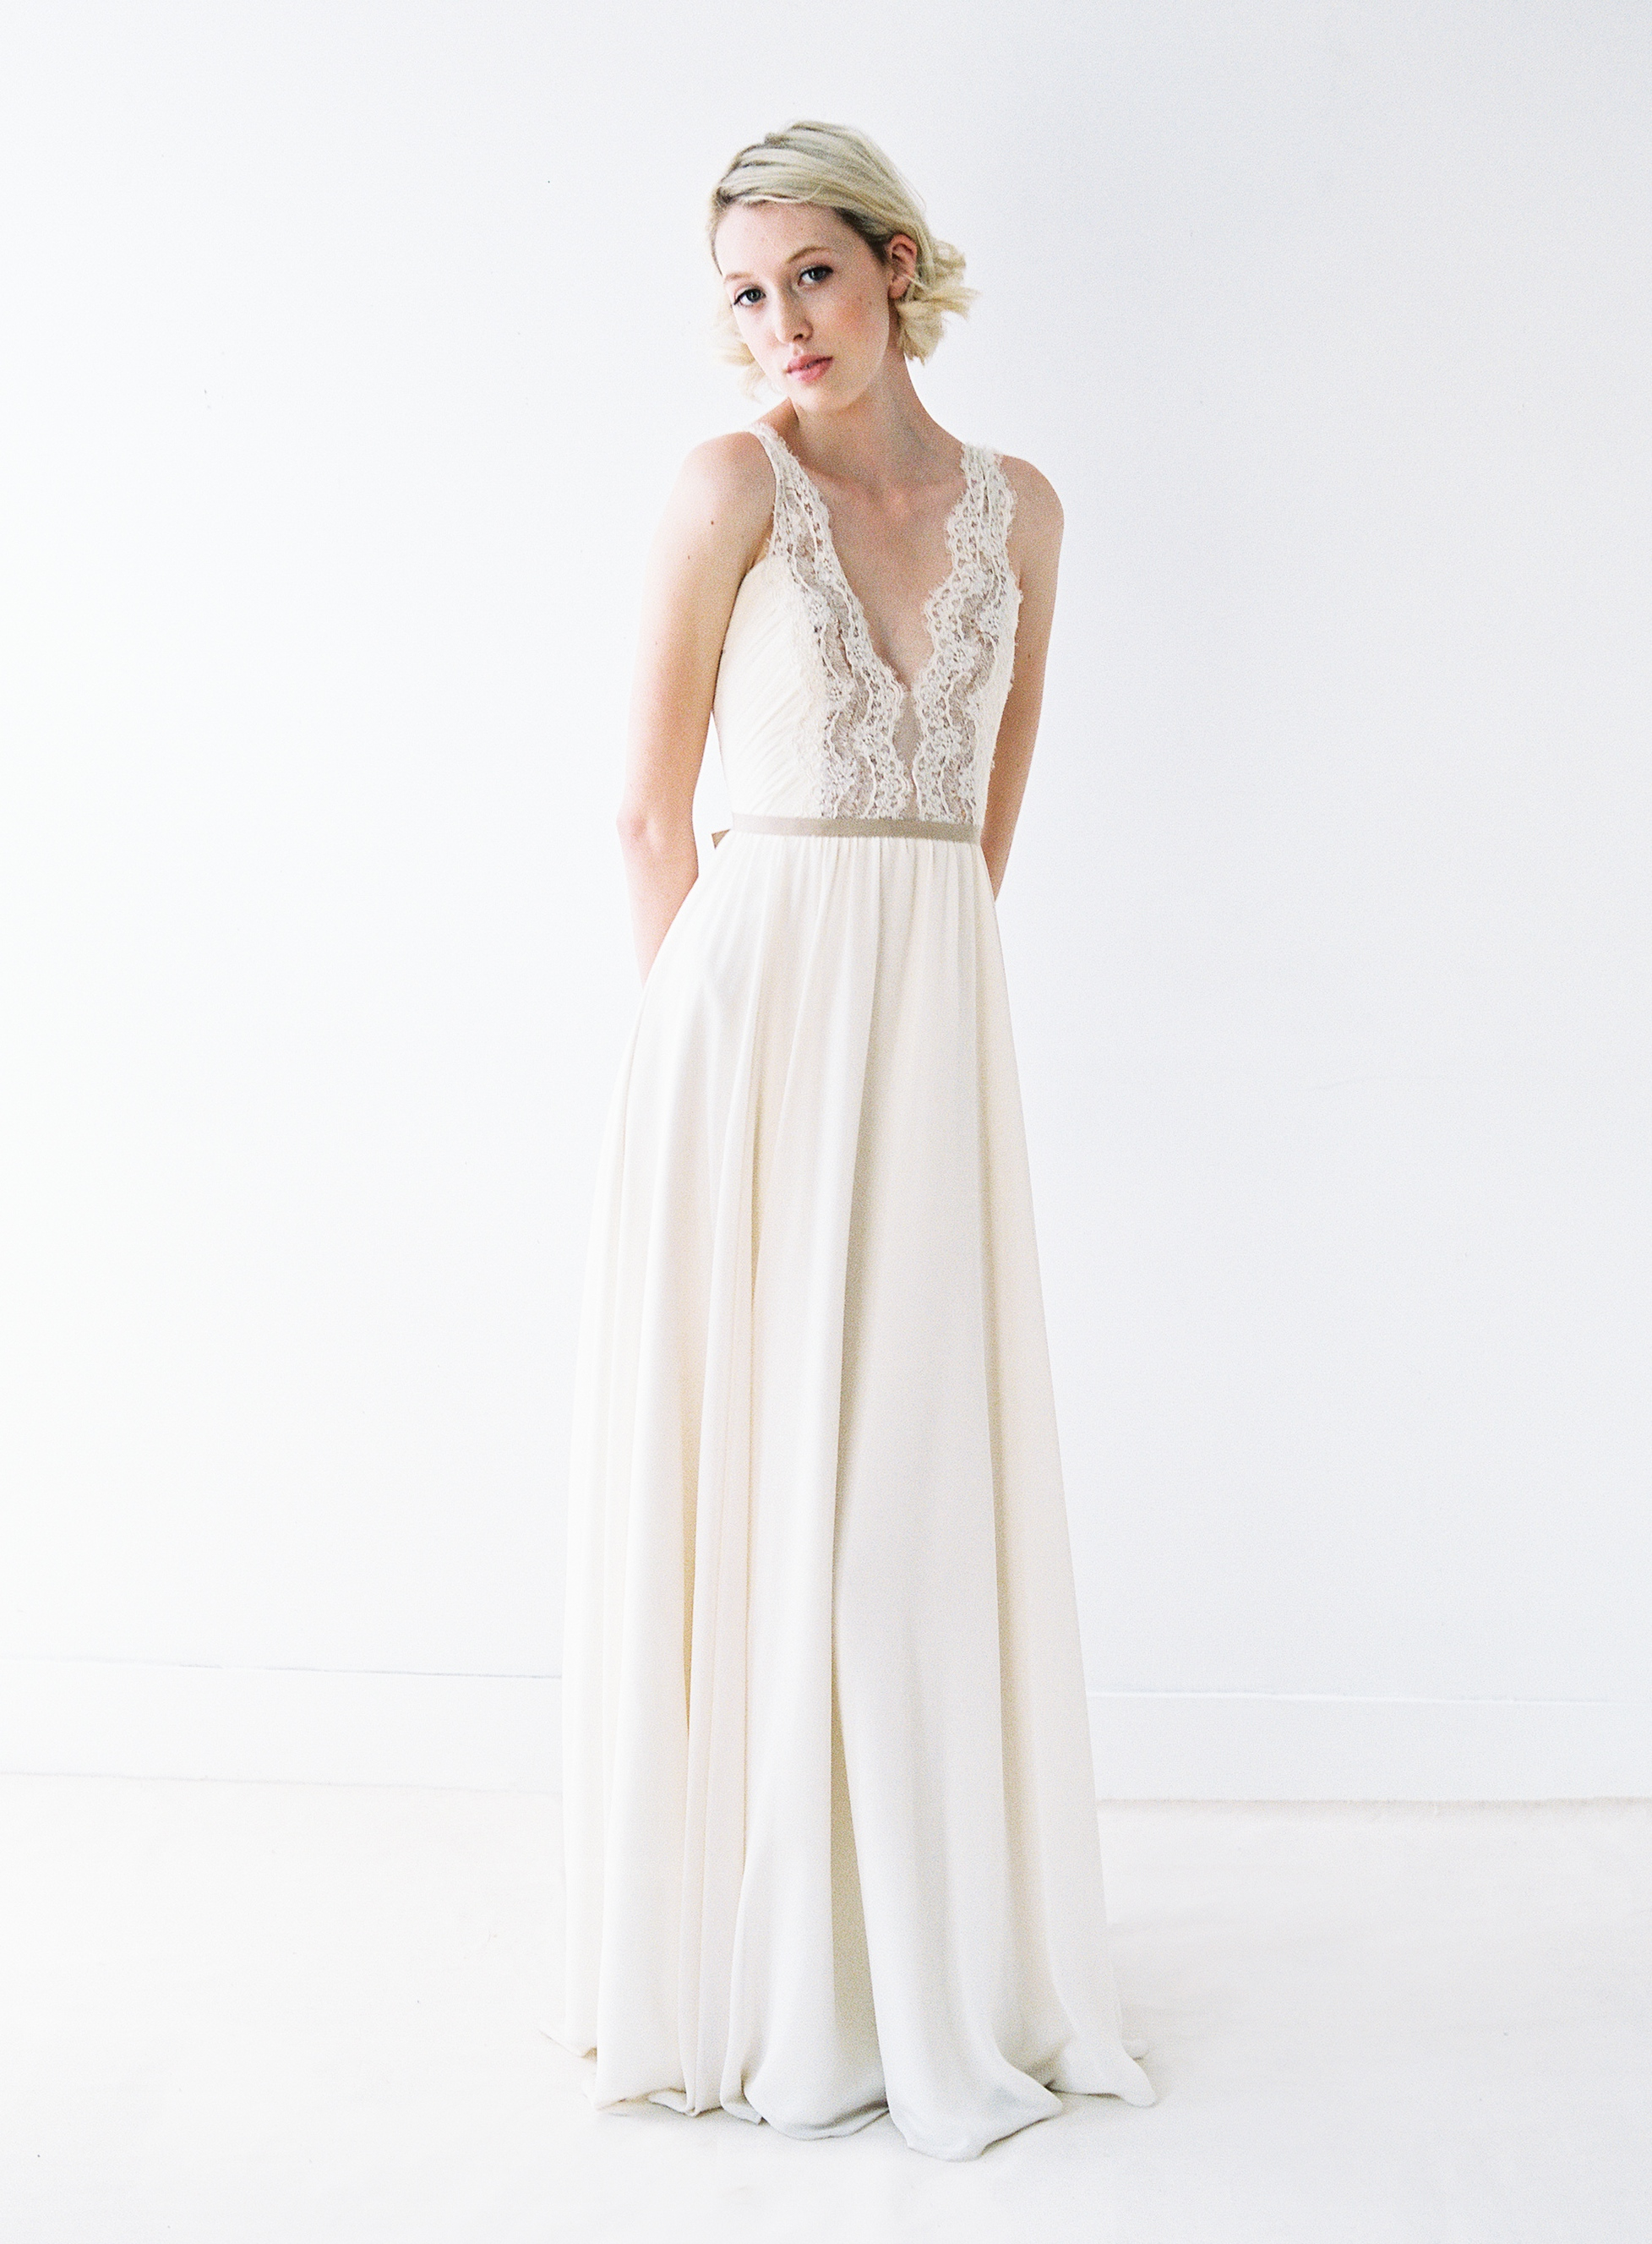 Nicolet wedding dress by Truvelle